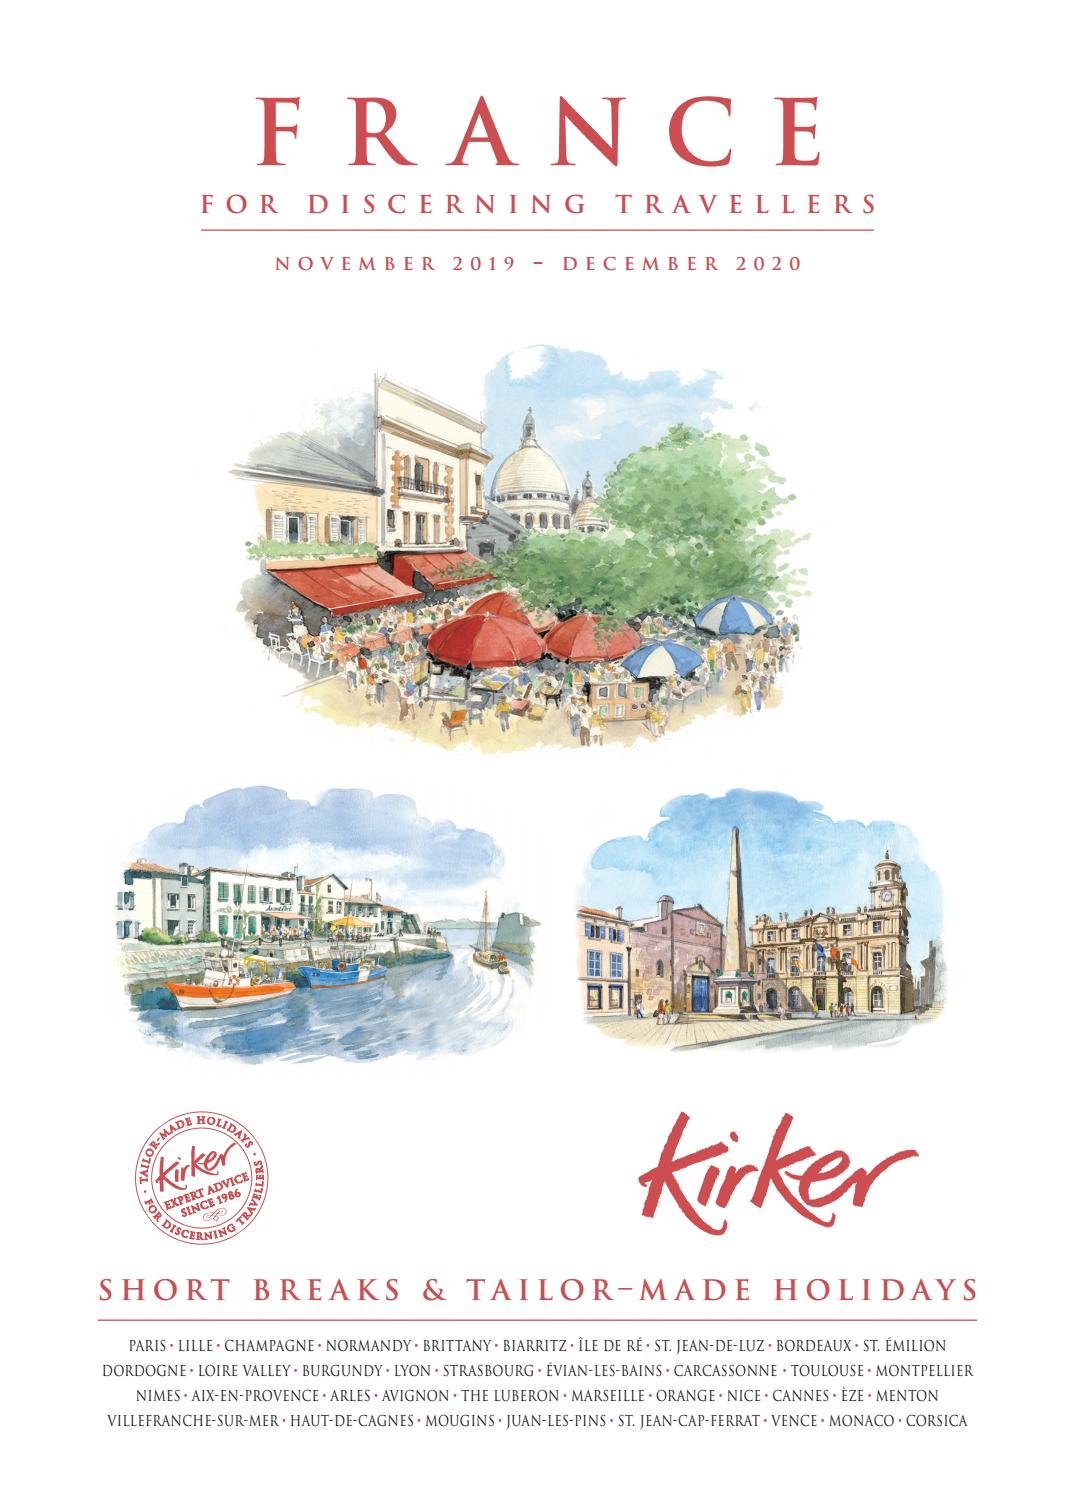 Maison Et Spa Coulommiers france for discerning travellers 2020 | kirker holidays